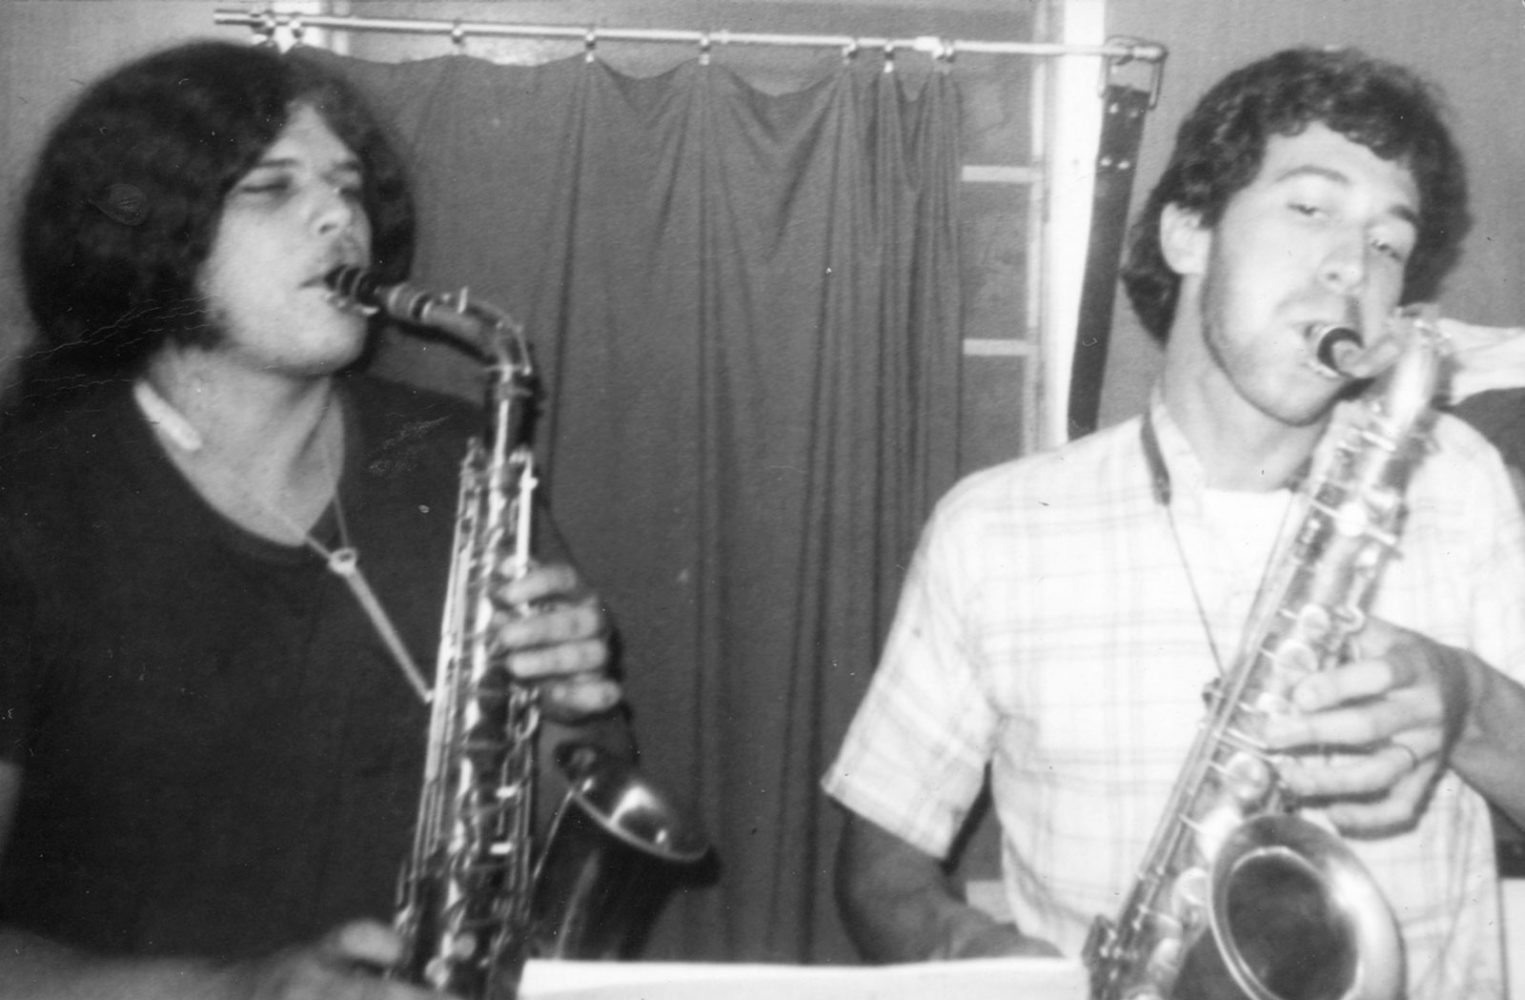 Chinaboise - Brad and Rich on alto saxes in Monon trailer